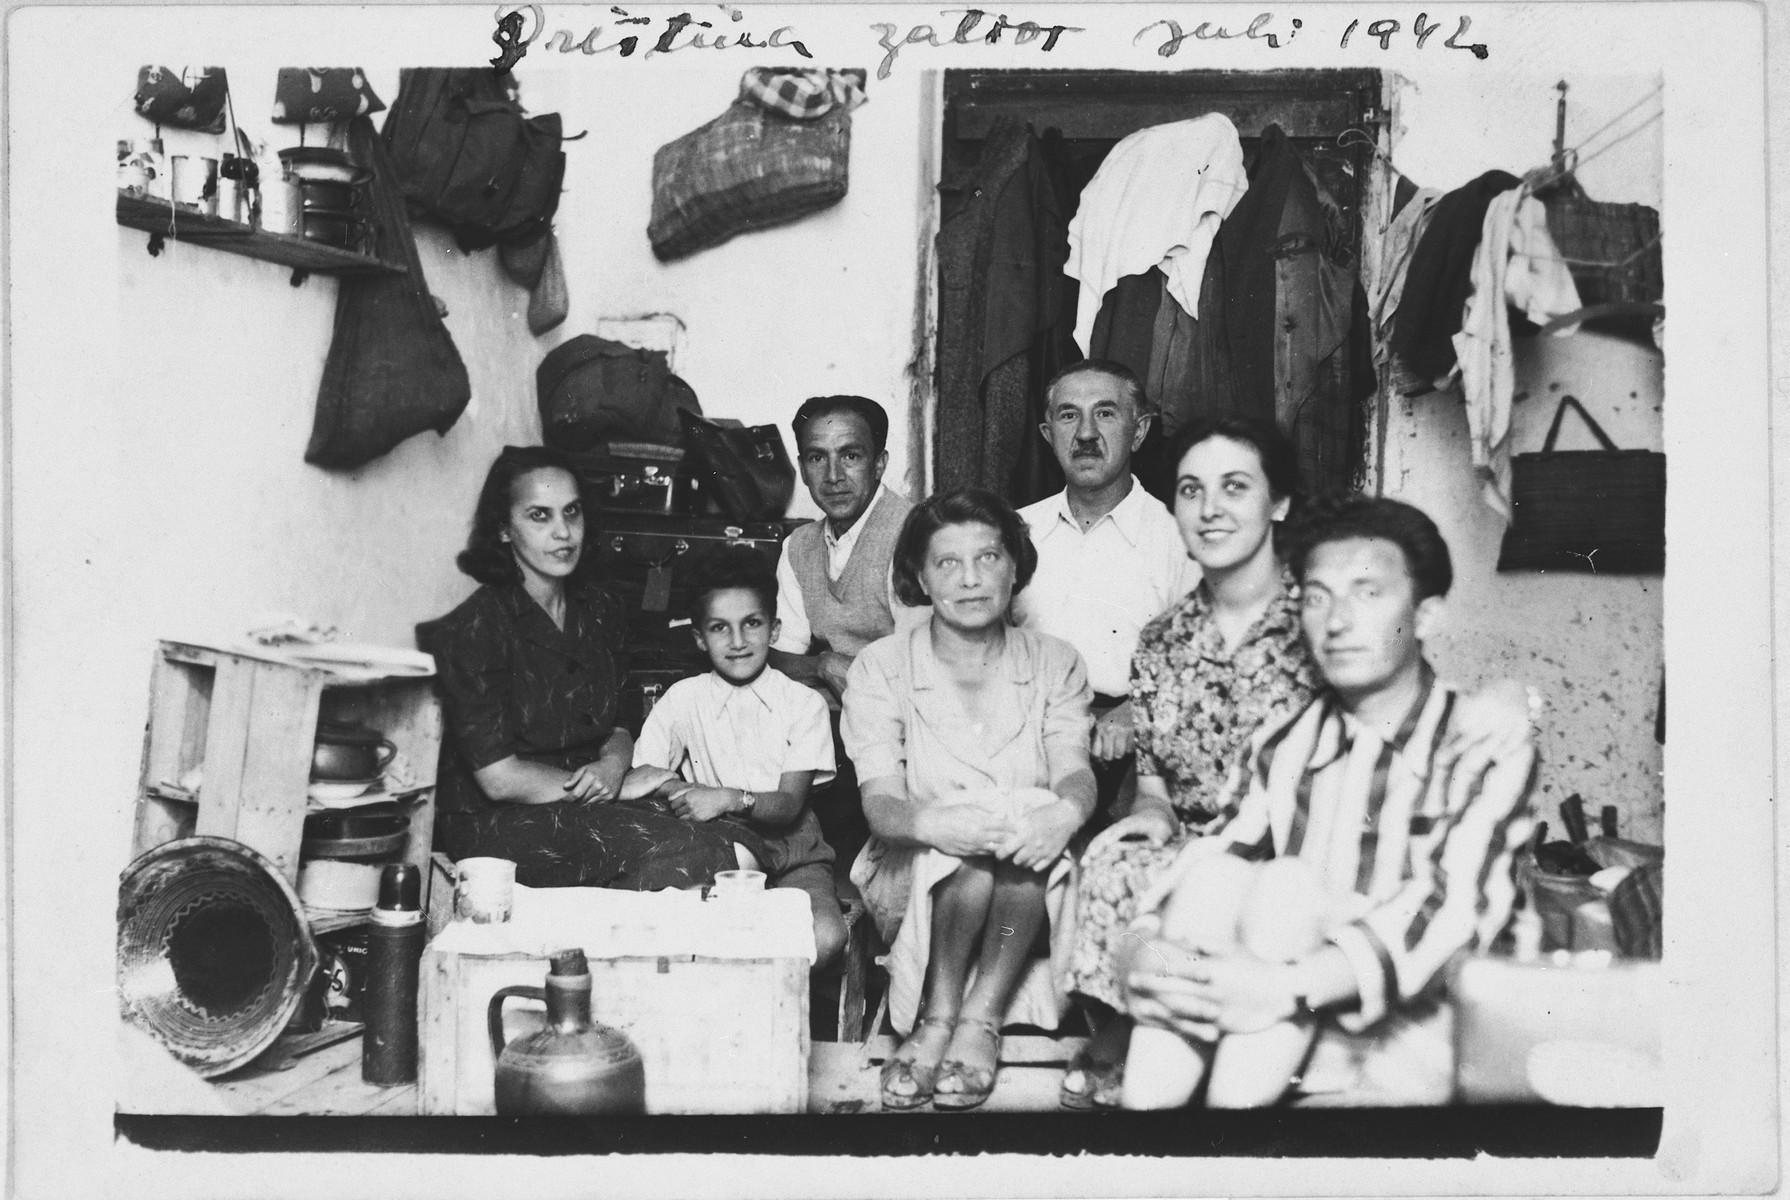 Jewish refugees living in a prison cell in Italian-occupied Pristina.  Among those pictured are Majer and Mimi Altarac with their son Jasa (left side).